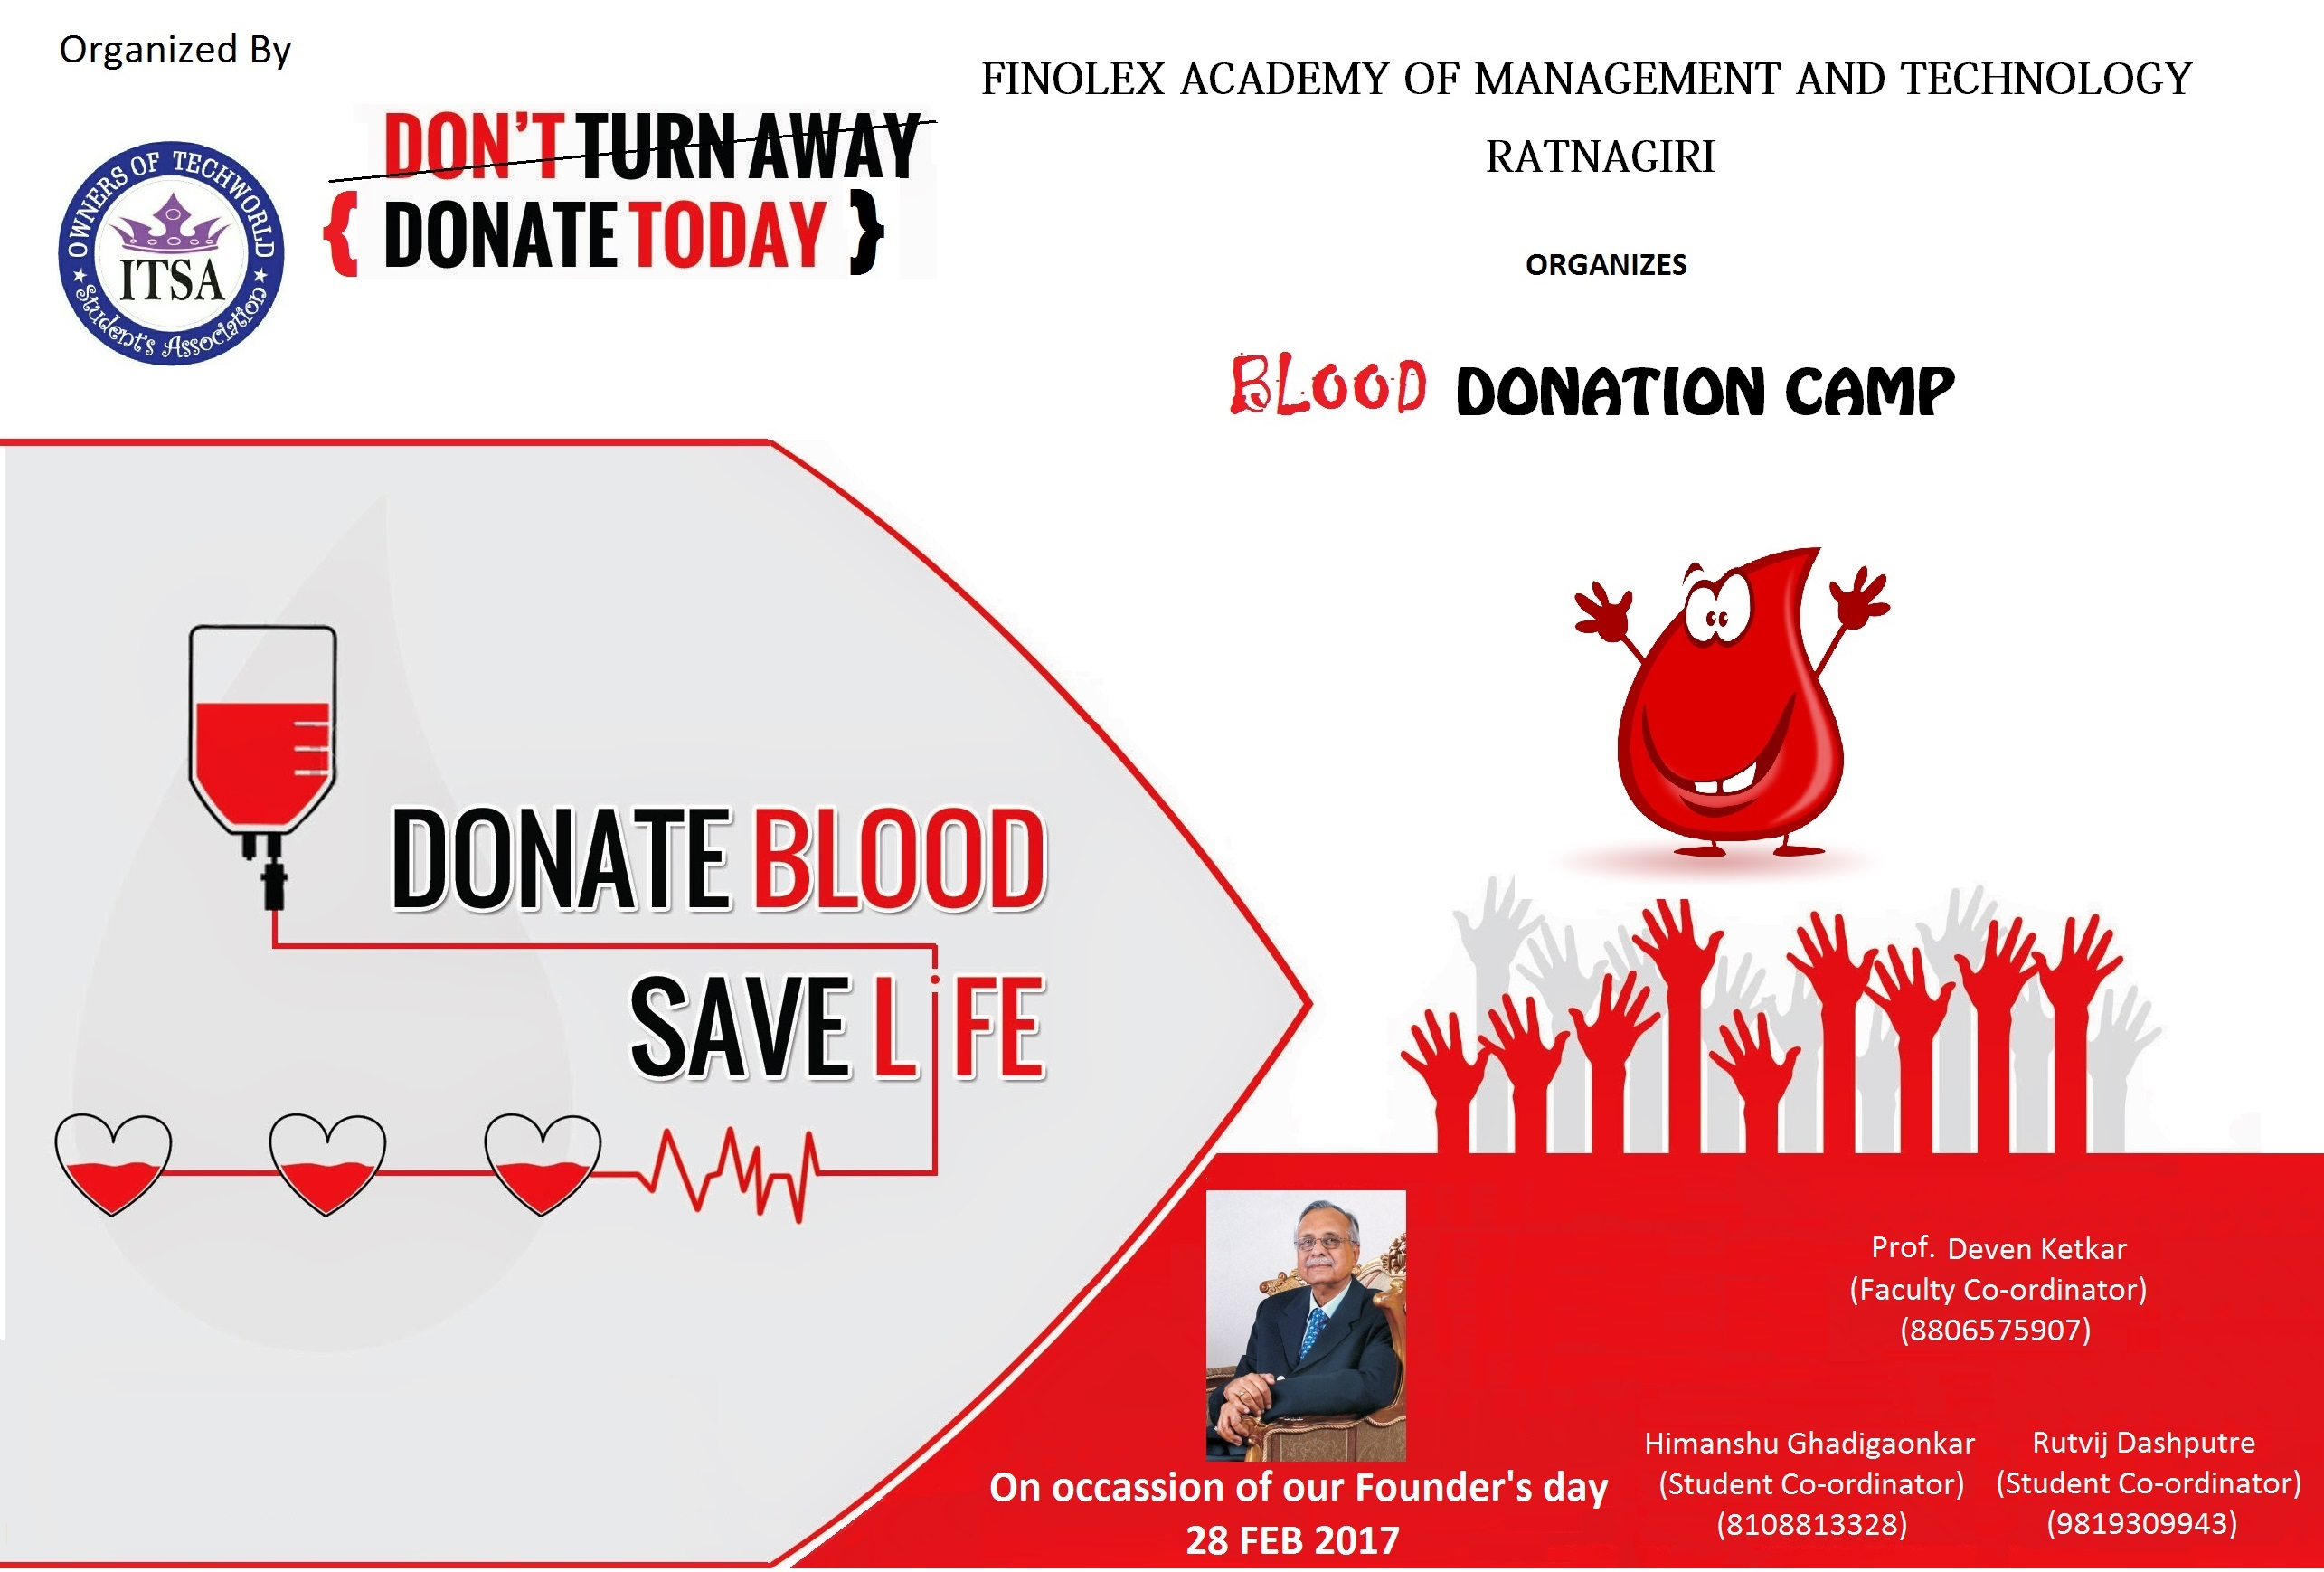 Top 5 poster on blood donation camp 2018 fotoshop blood donation camp finolex academy of management and technology altavistaventures Image collections